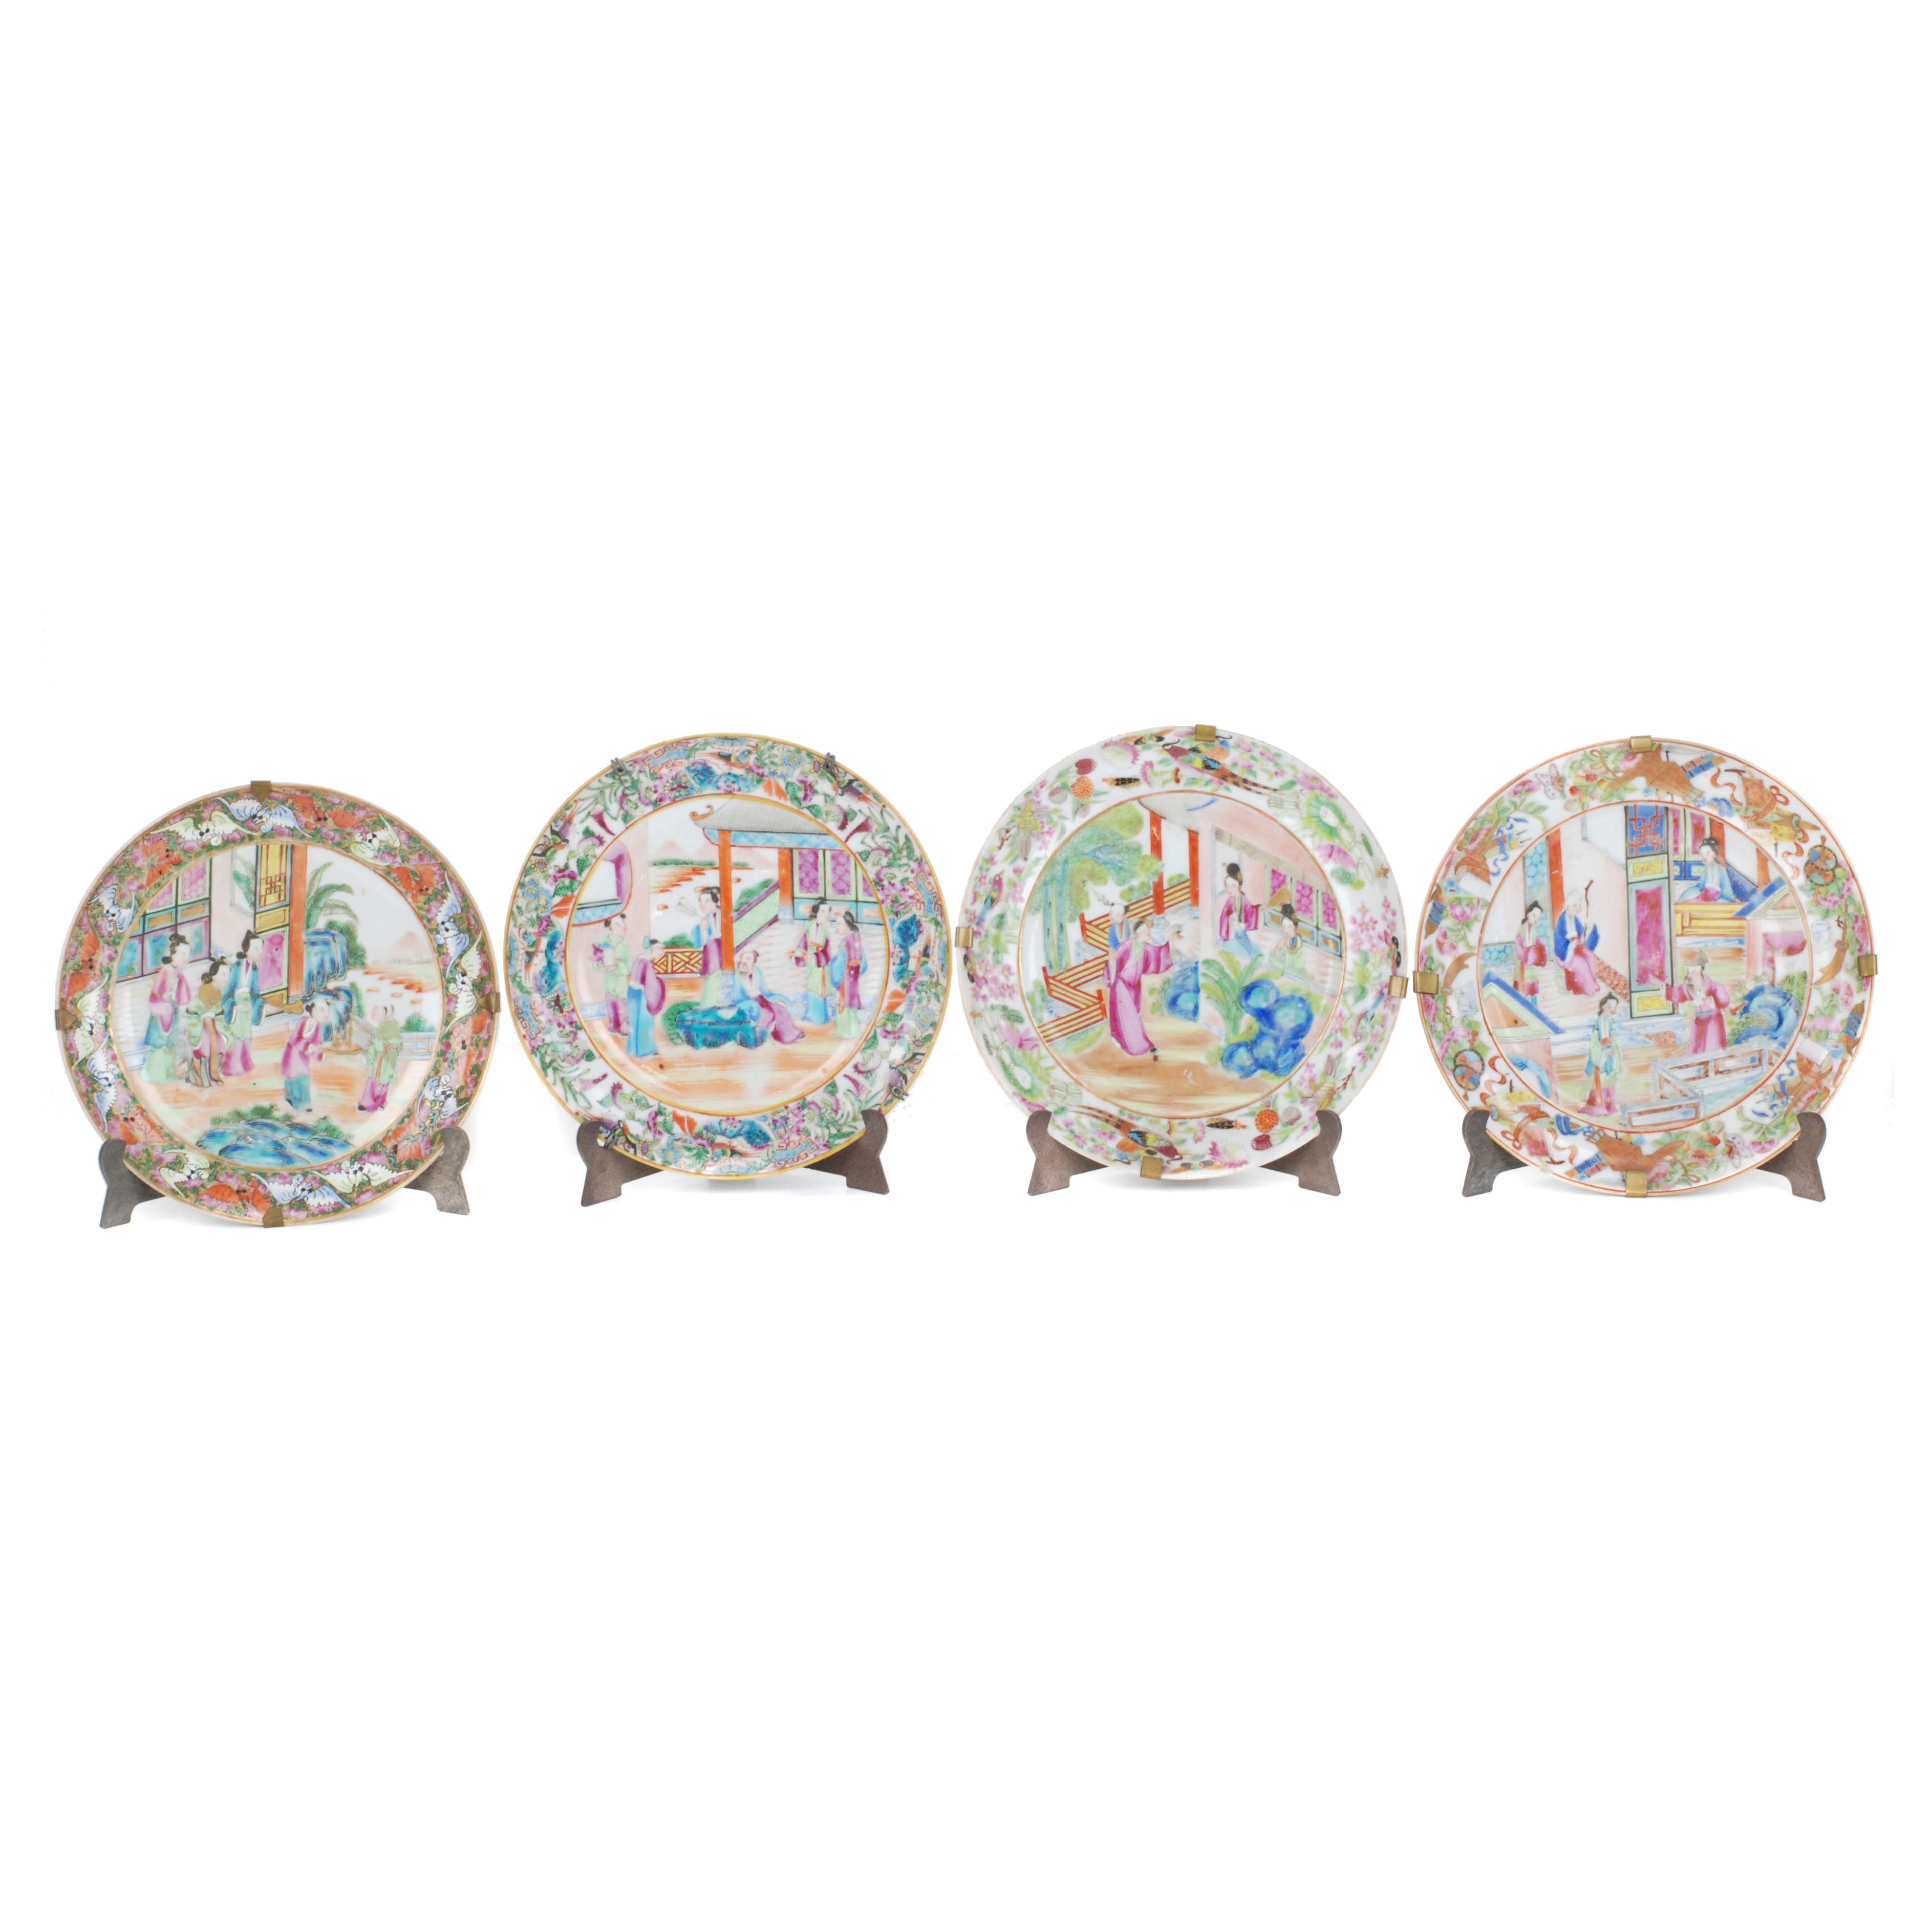 FOUR CHINESE PLATES, C19th.